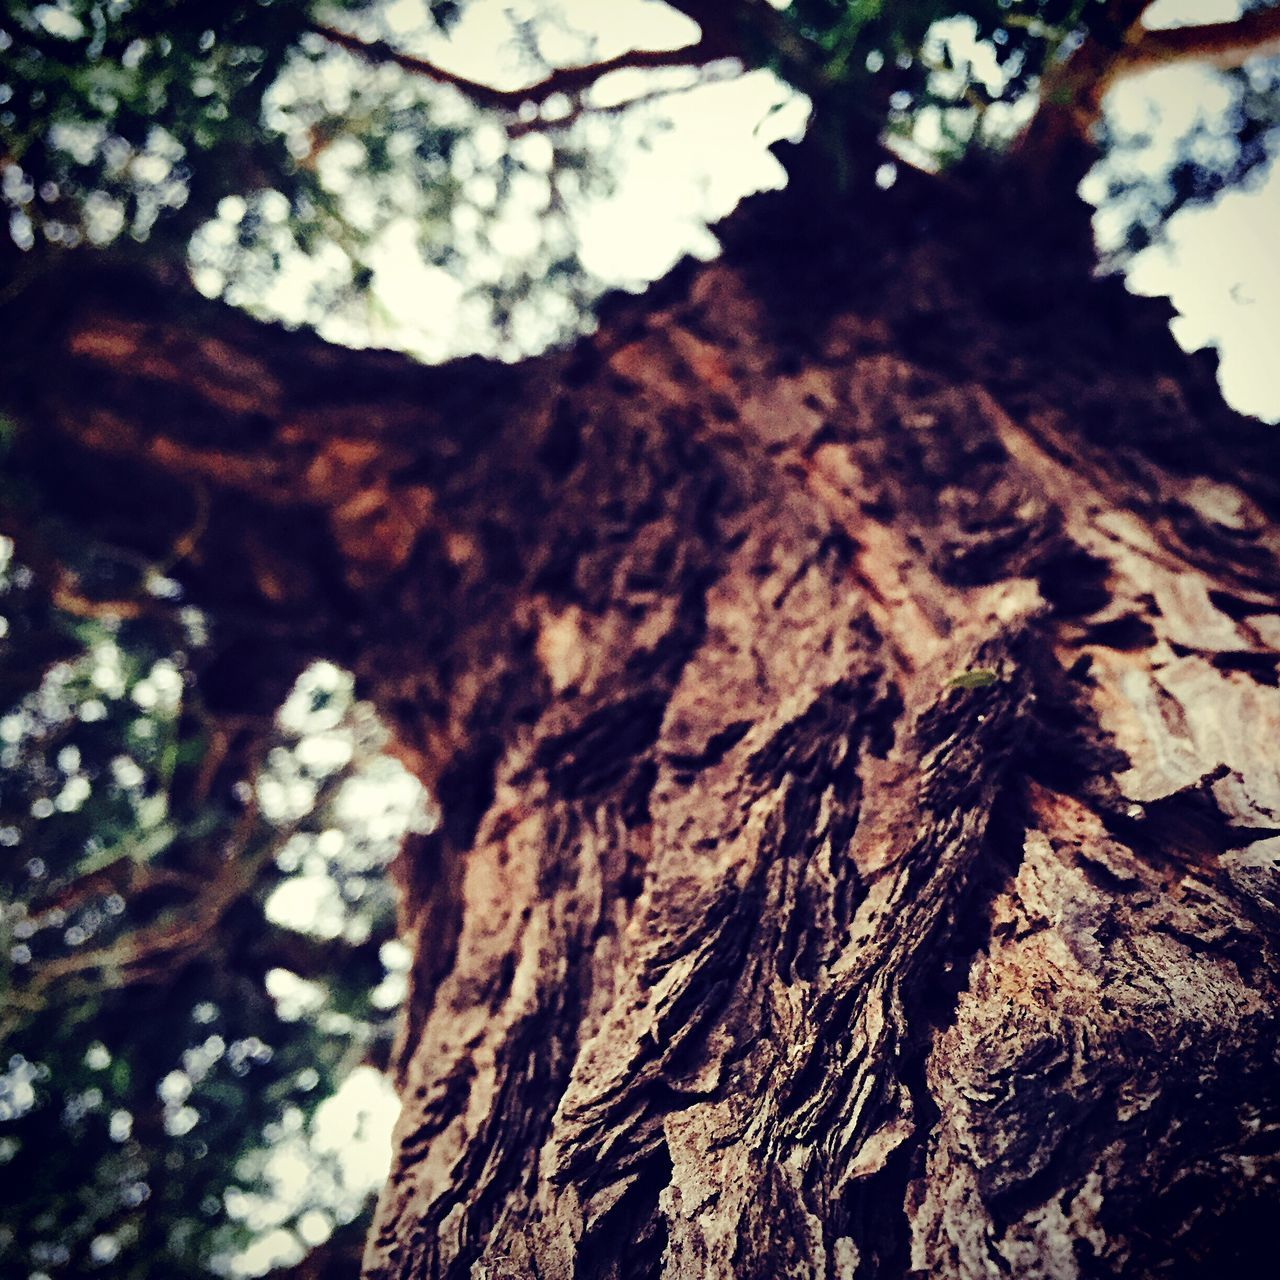 tree trunk, tree, nature, no people, close-up, bark, textured, day, outdoors, growth, beauty in nature